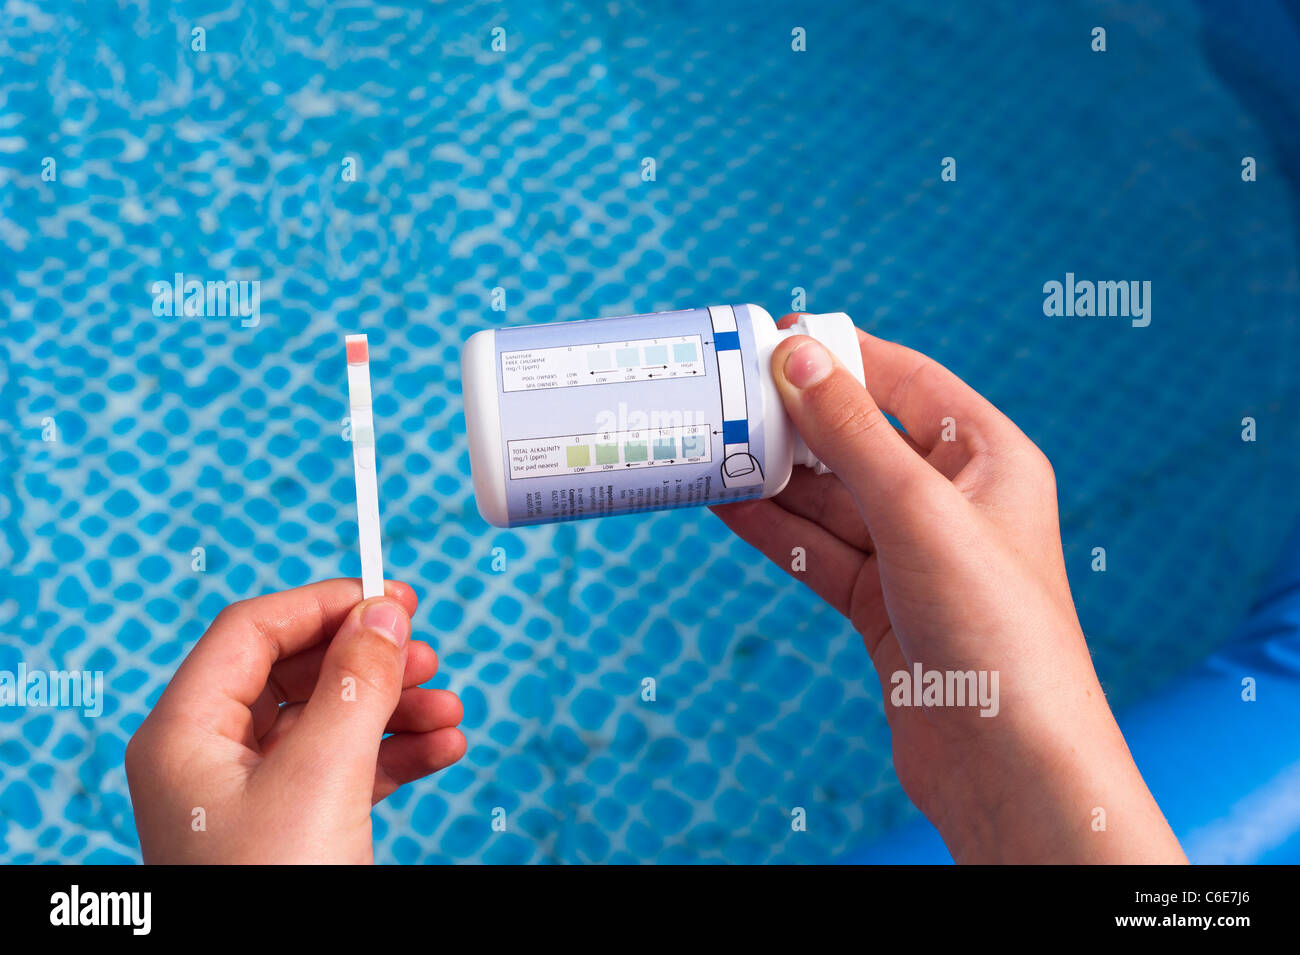 Testing a swimming pool with a testing stick dip test for alkalinity , chlorine and PH levels - Stock Image